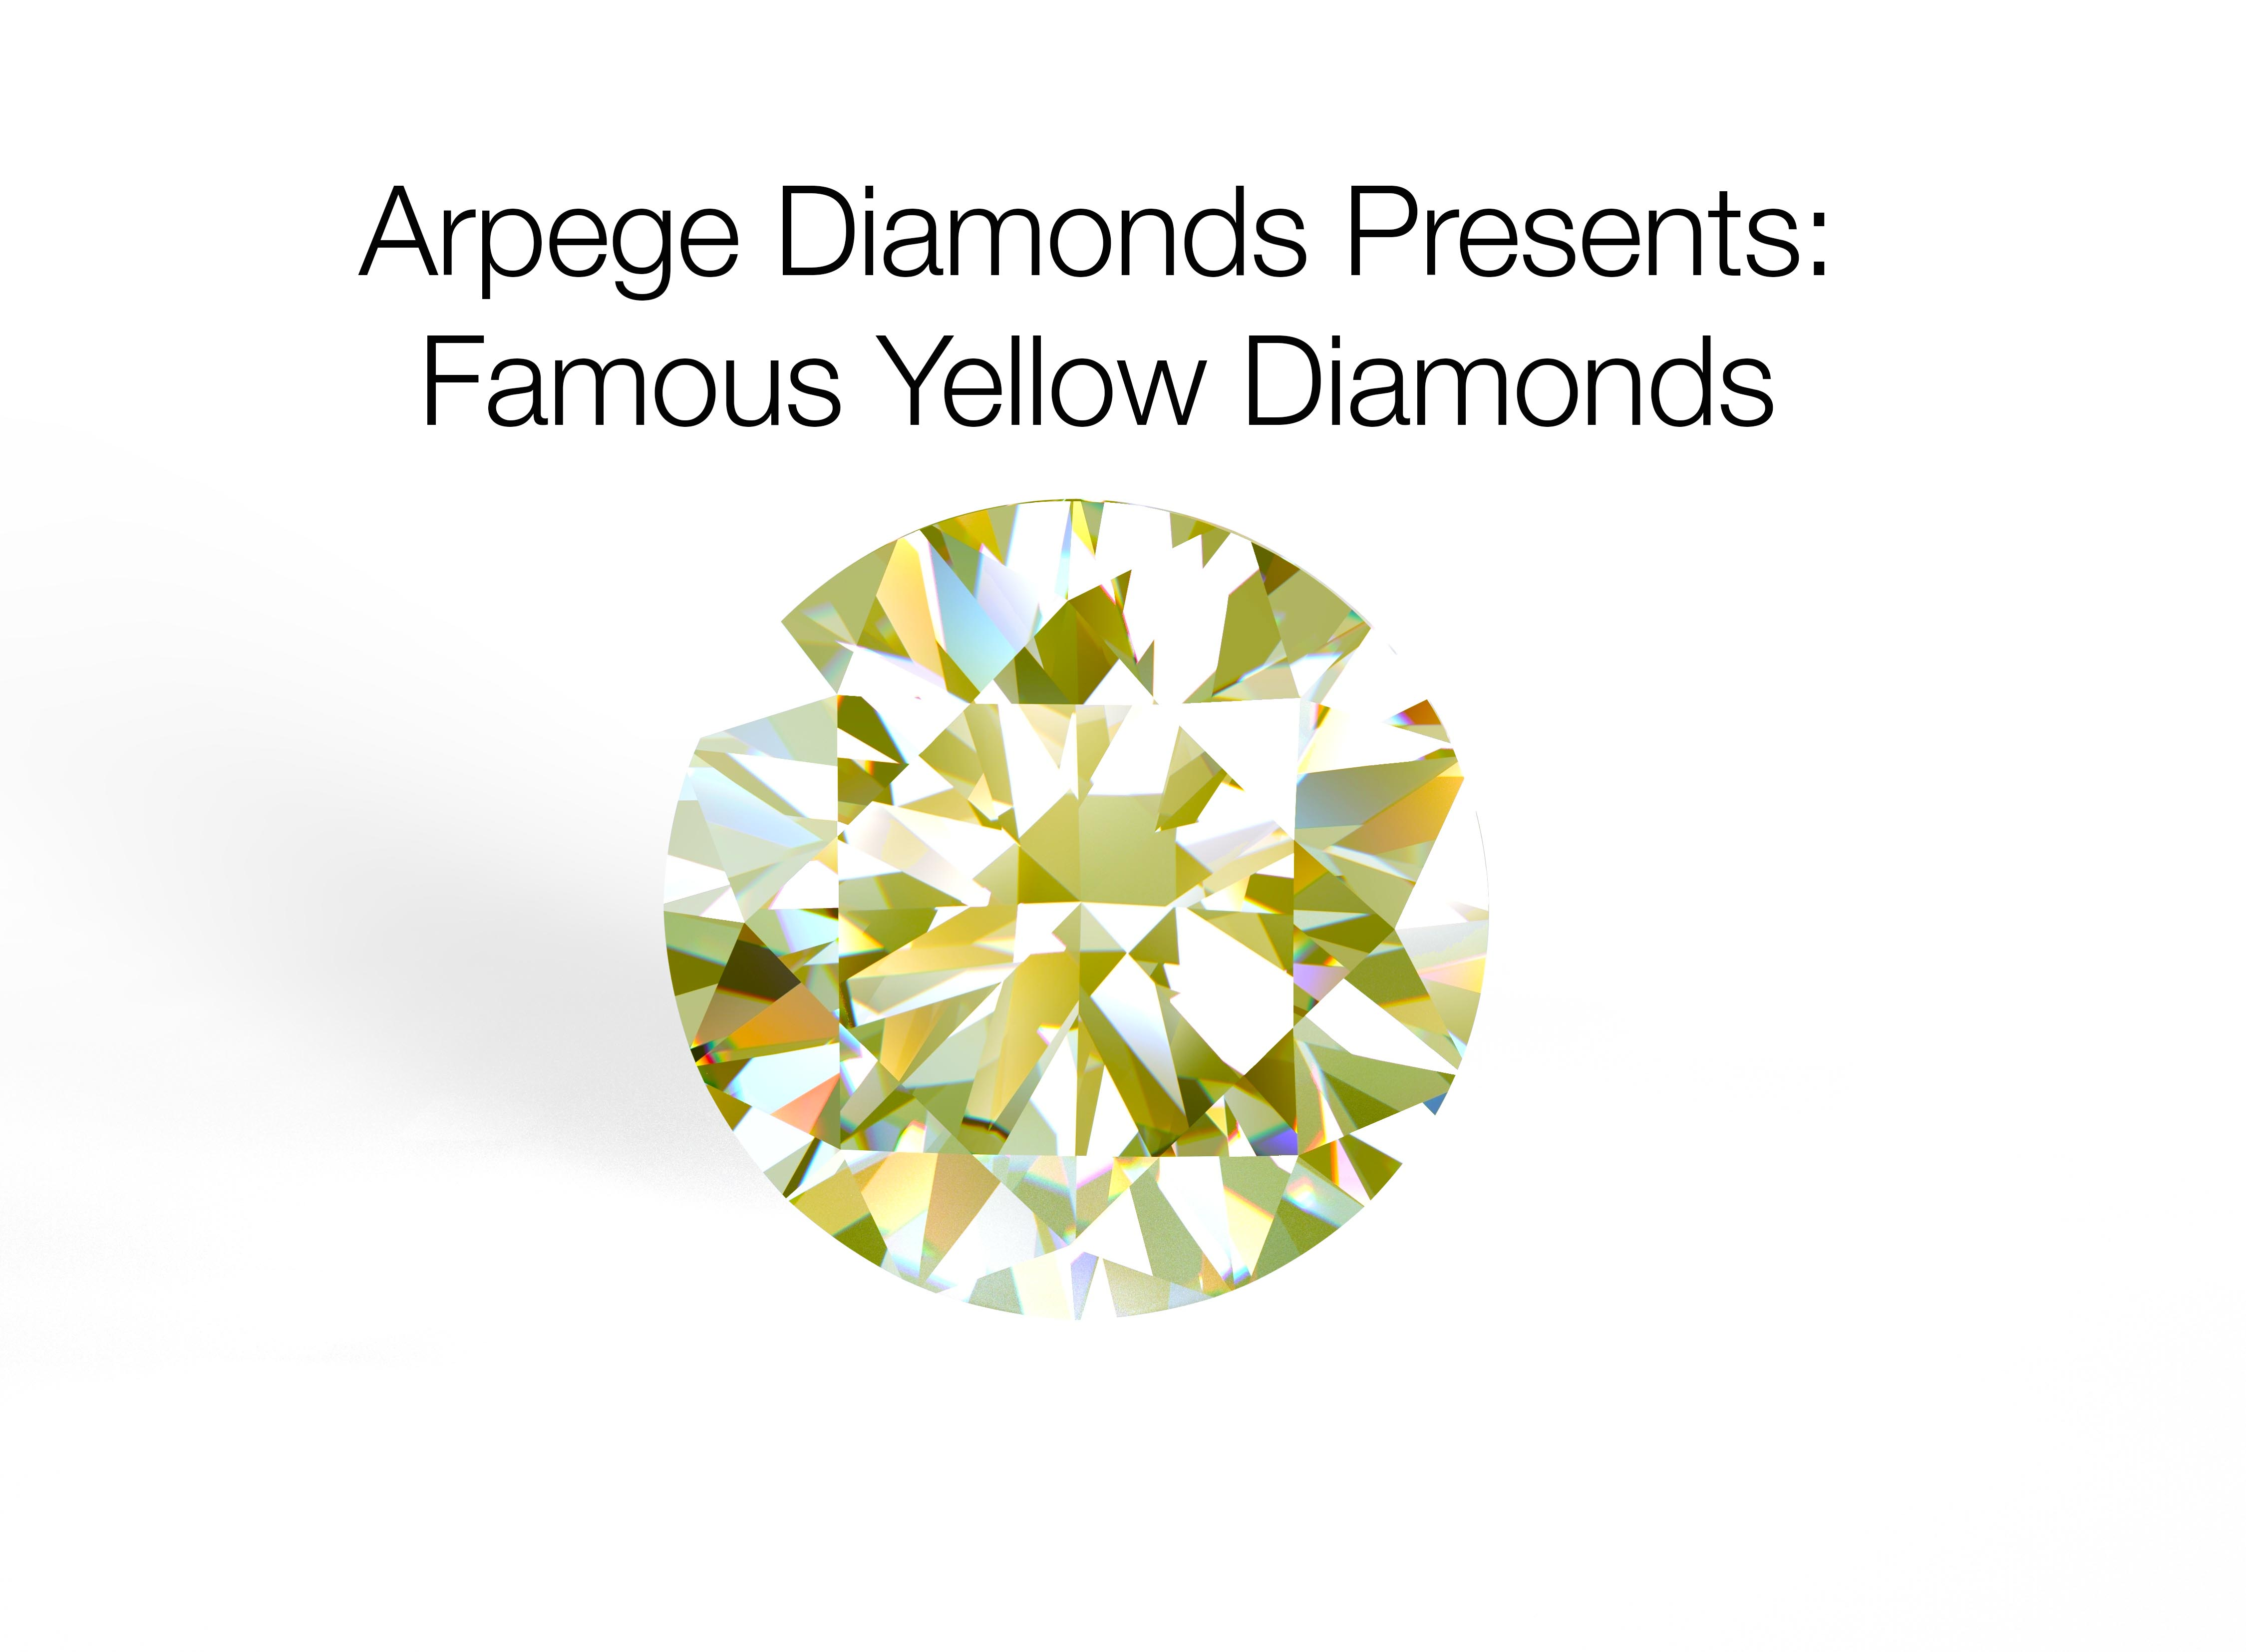 famous_yellow_diamonds.jpg